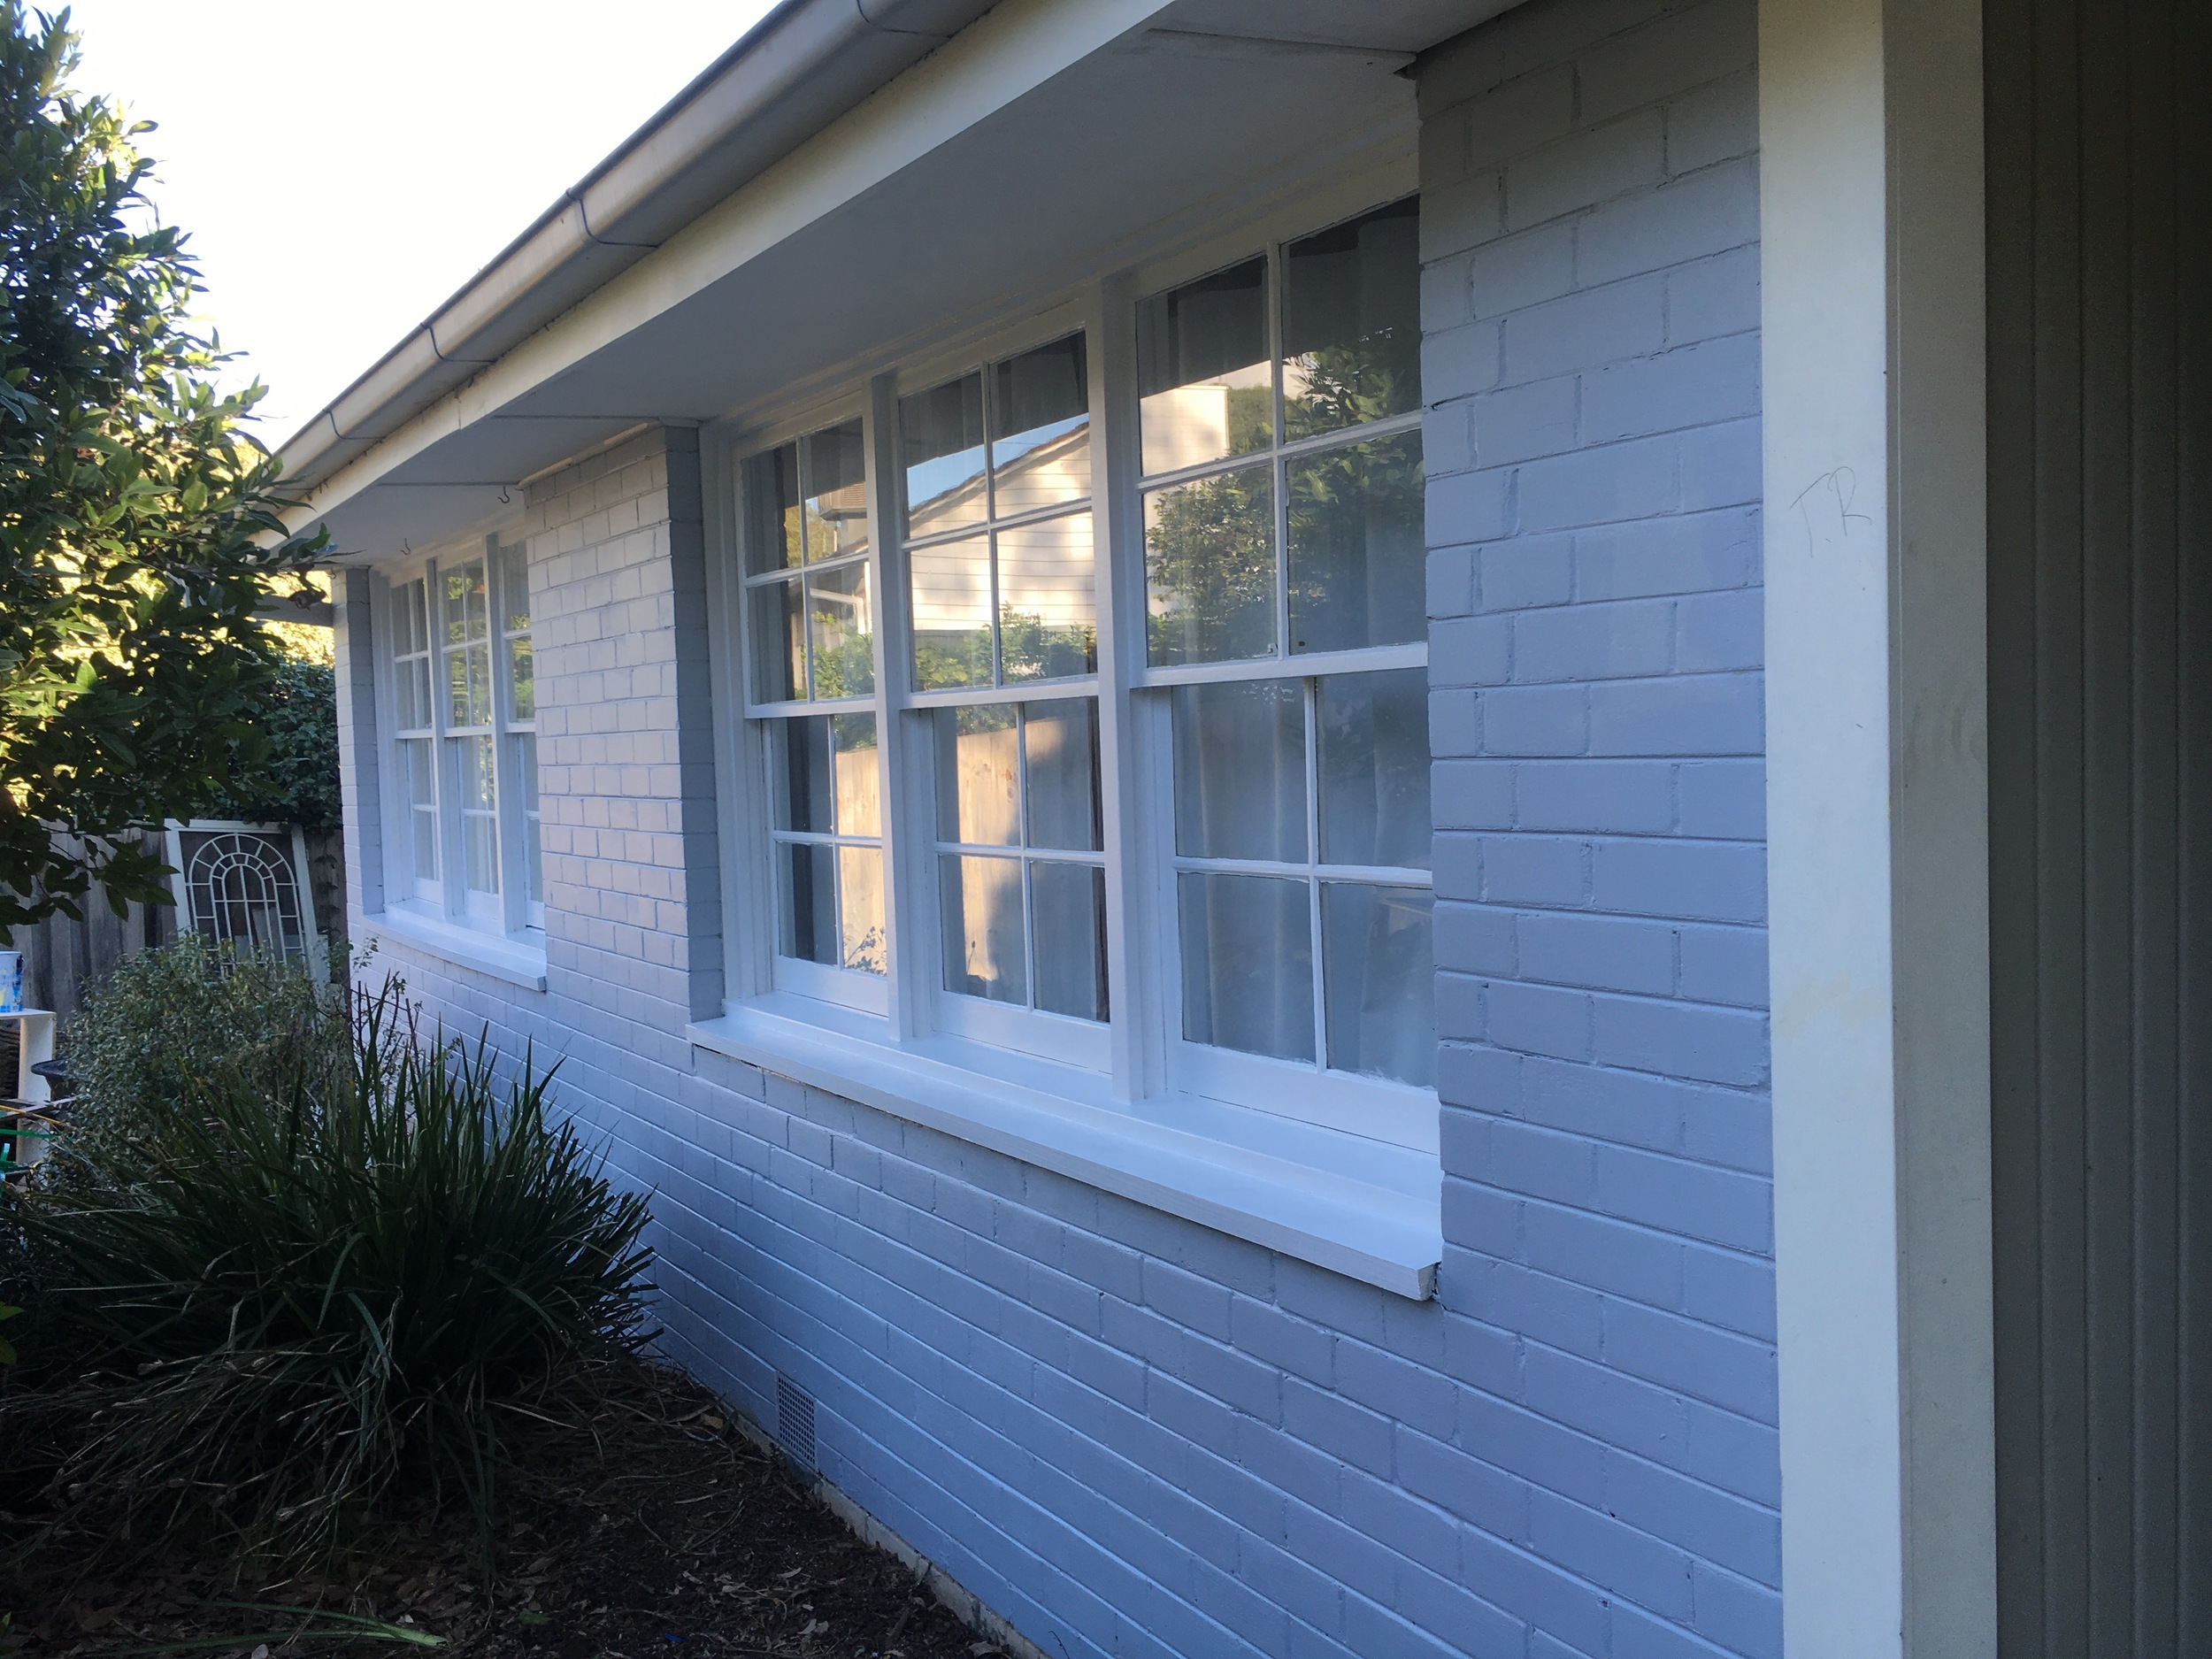 Exterior painting - use an angled brush to more easily paint fiddly window frames